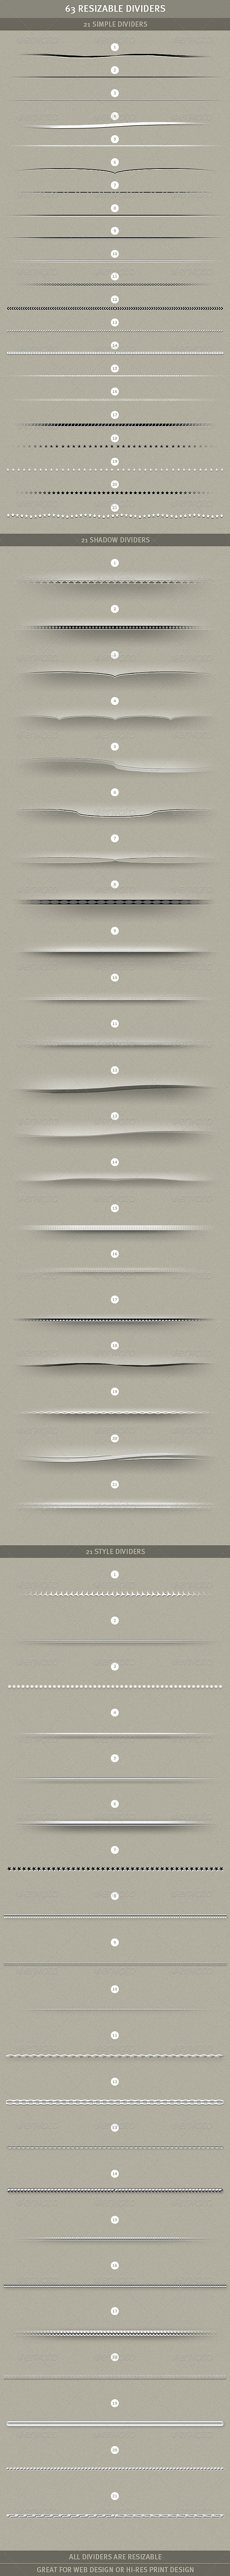 GraphicRiver 63 Resizable Dividers 1054690